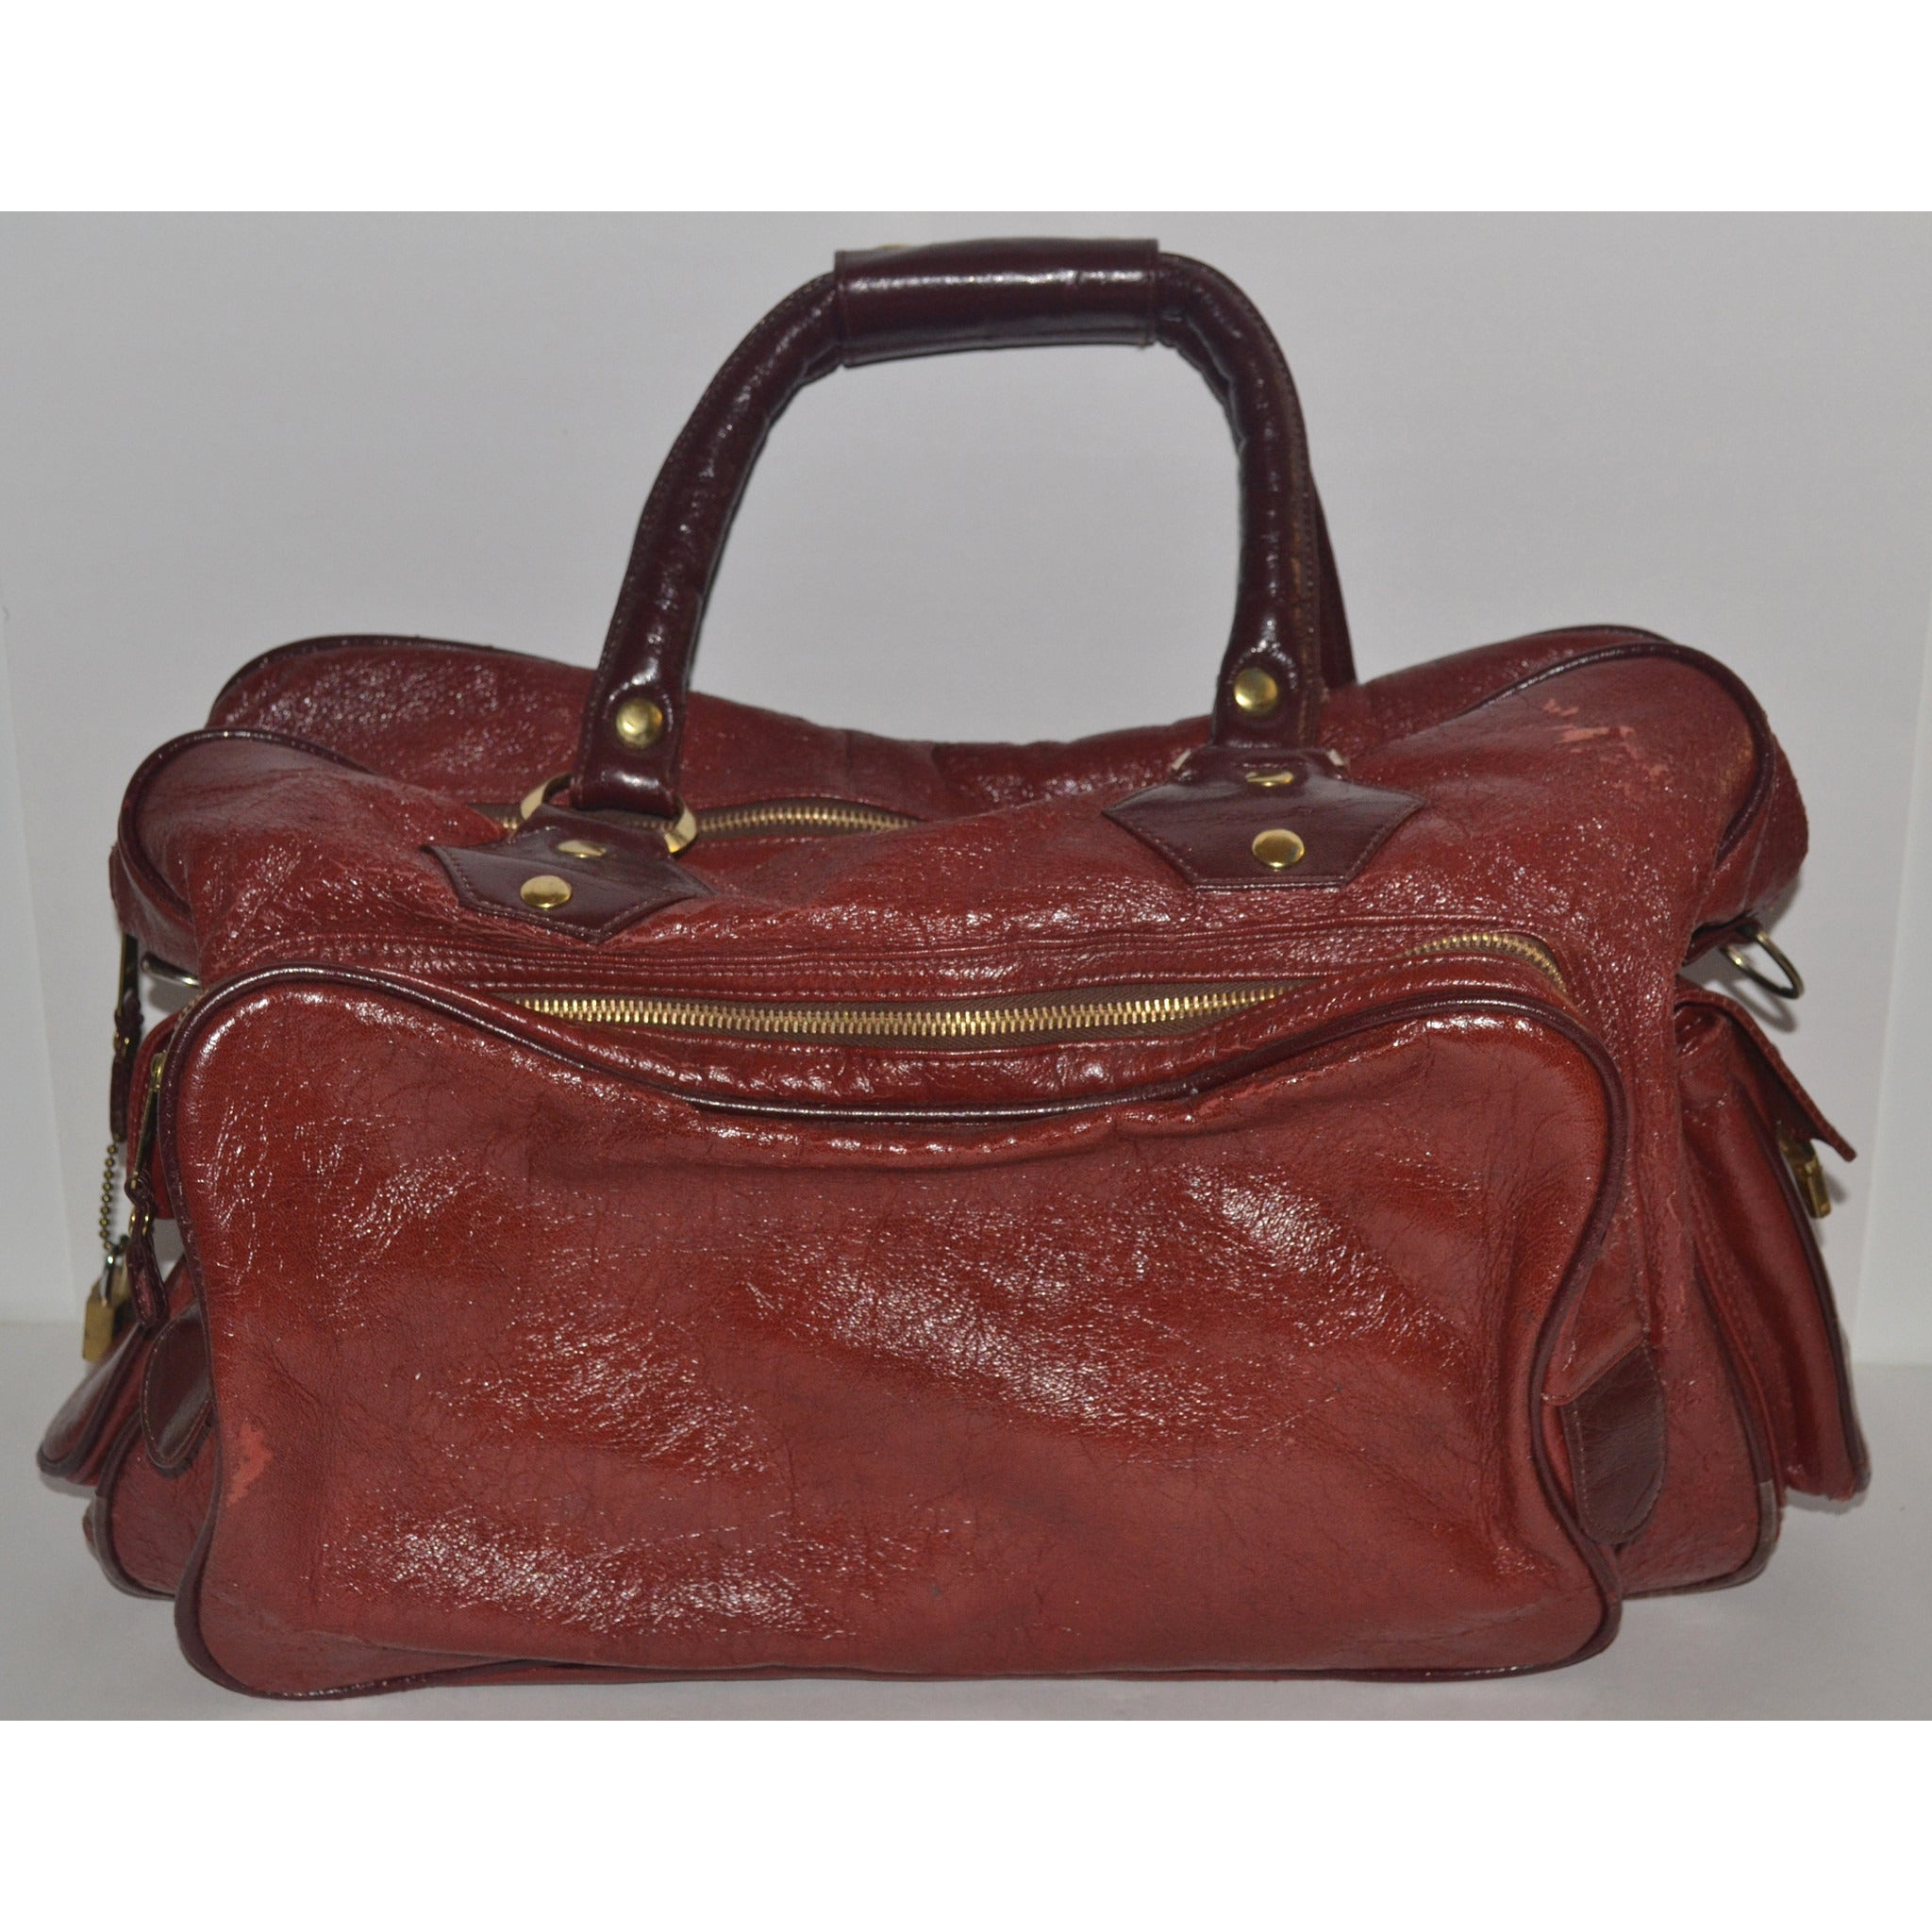 Vintage Burgundy Travel Bag By Monarch Luggage